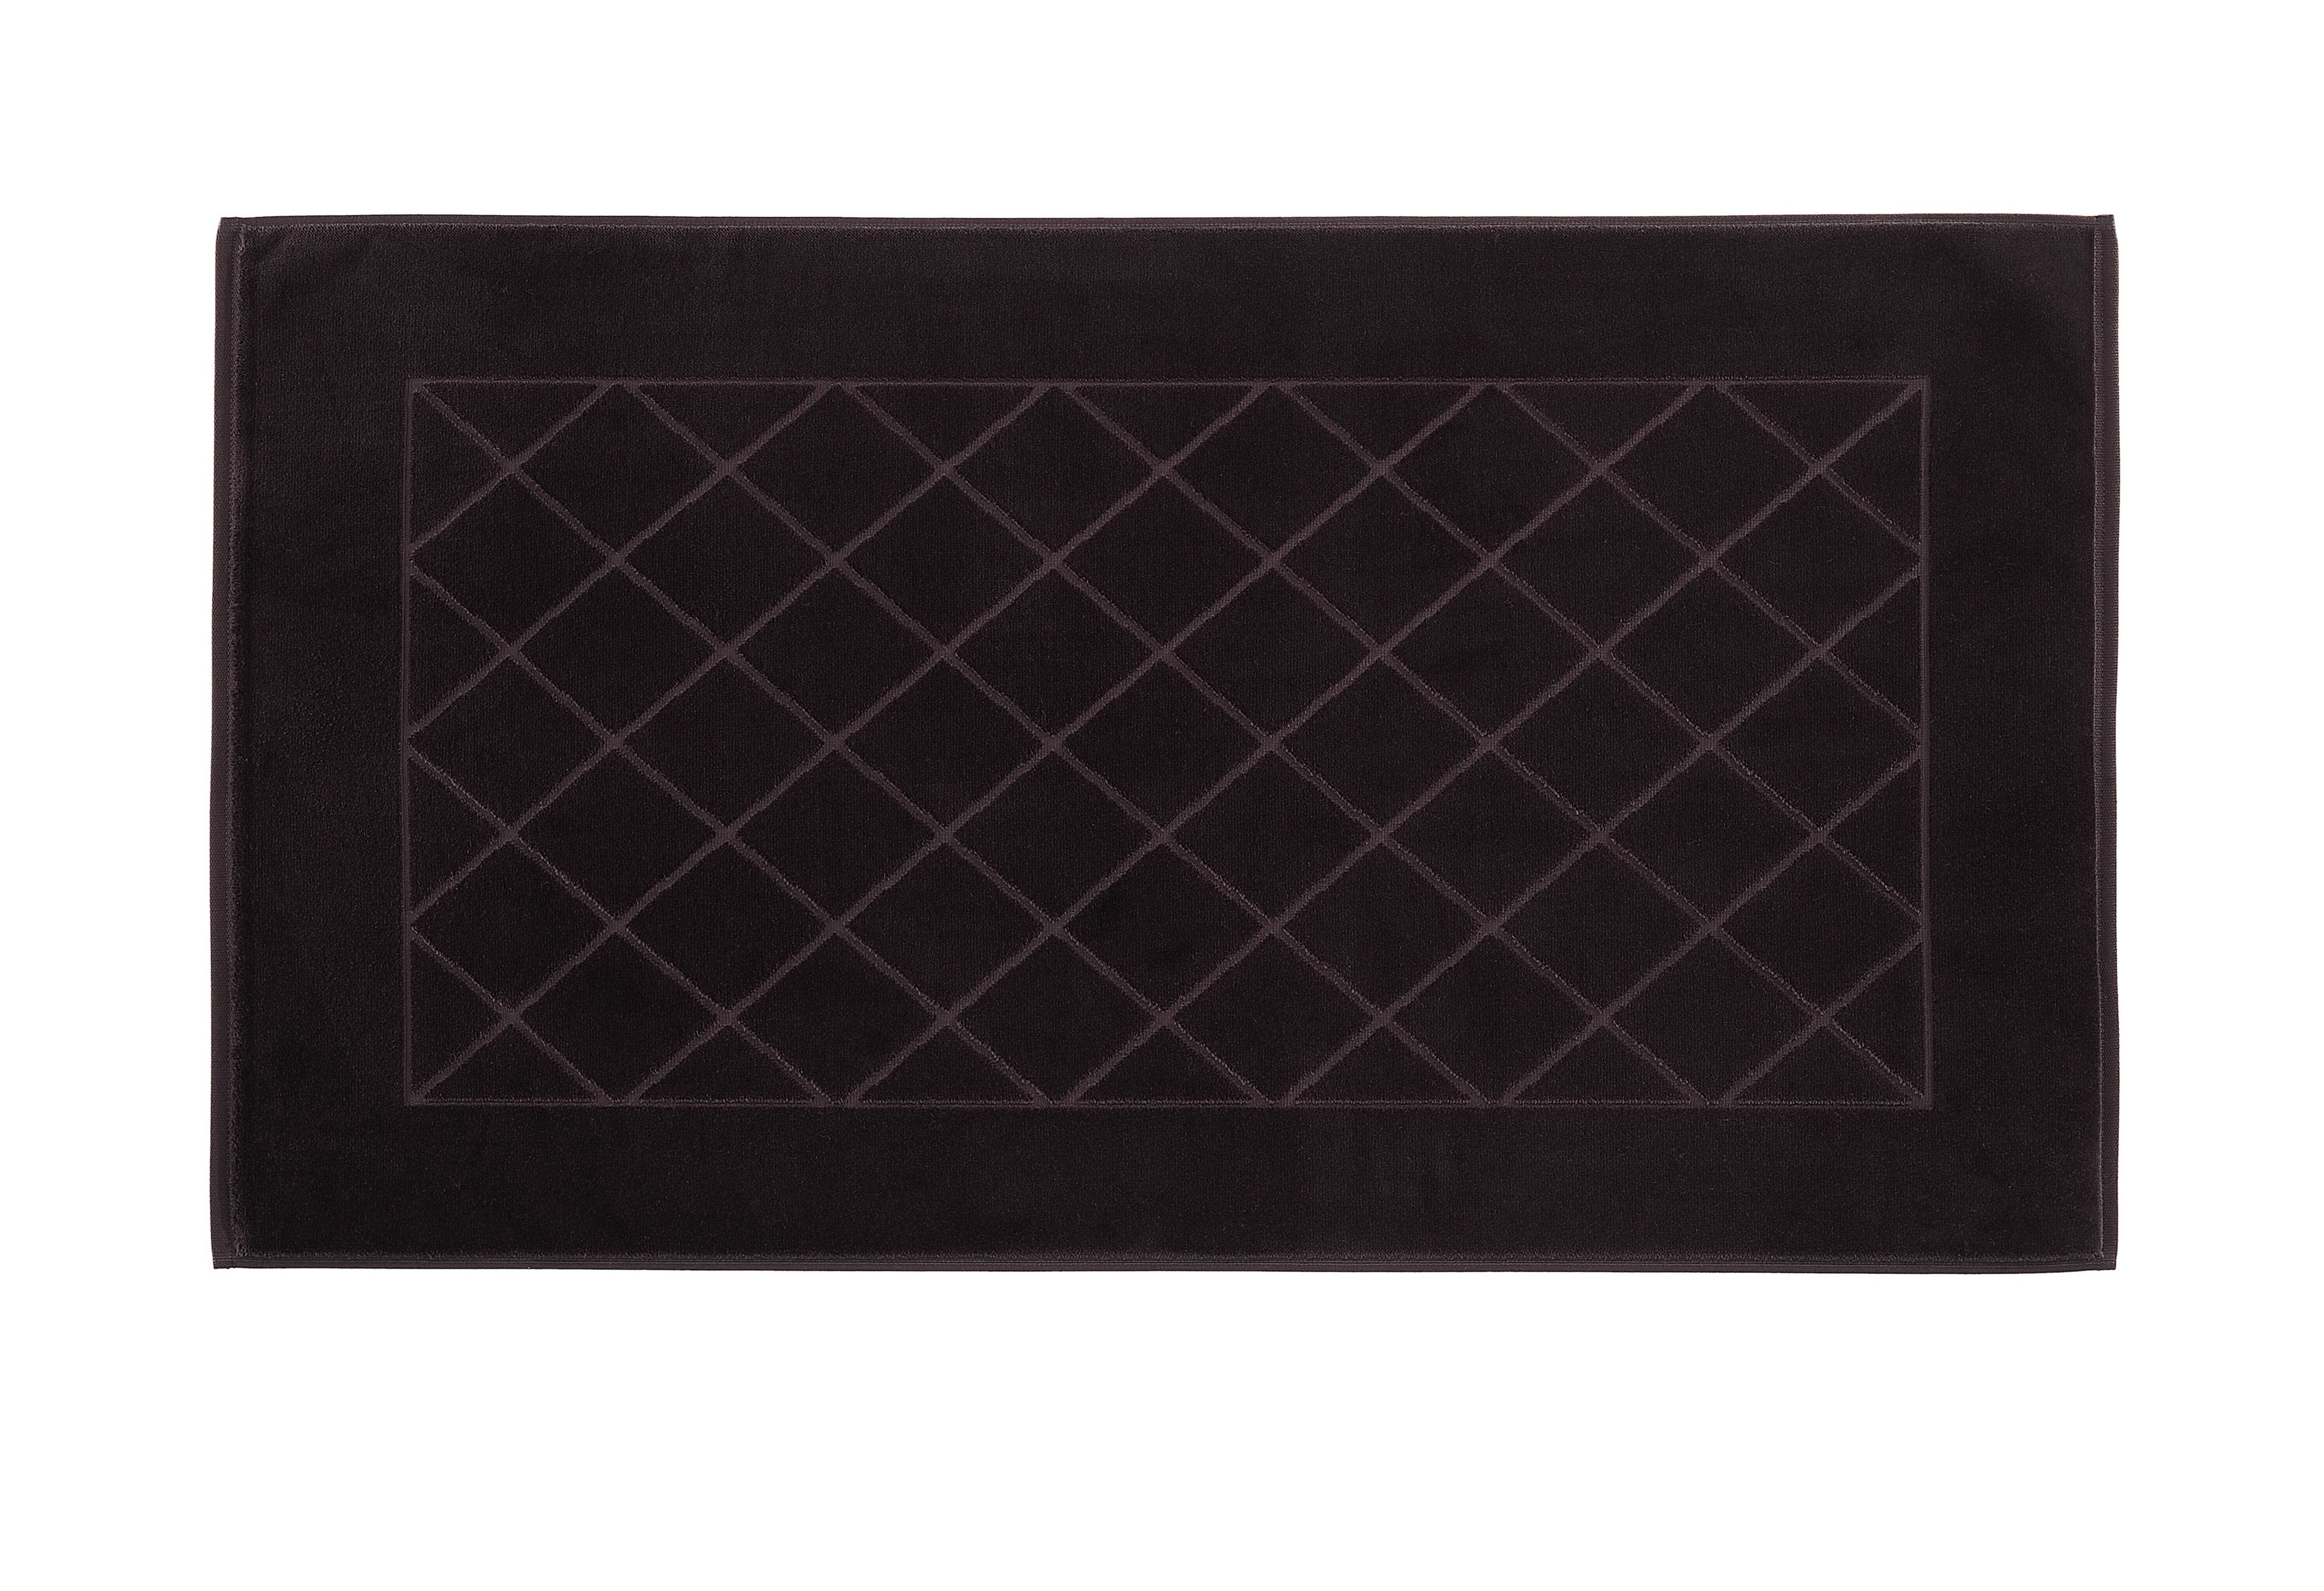 Dreams bath mat range in charcoal